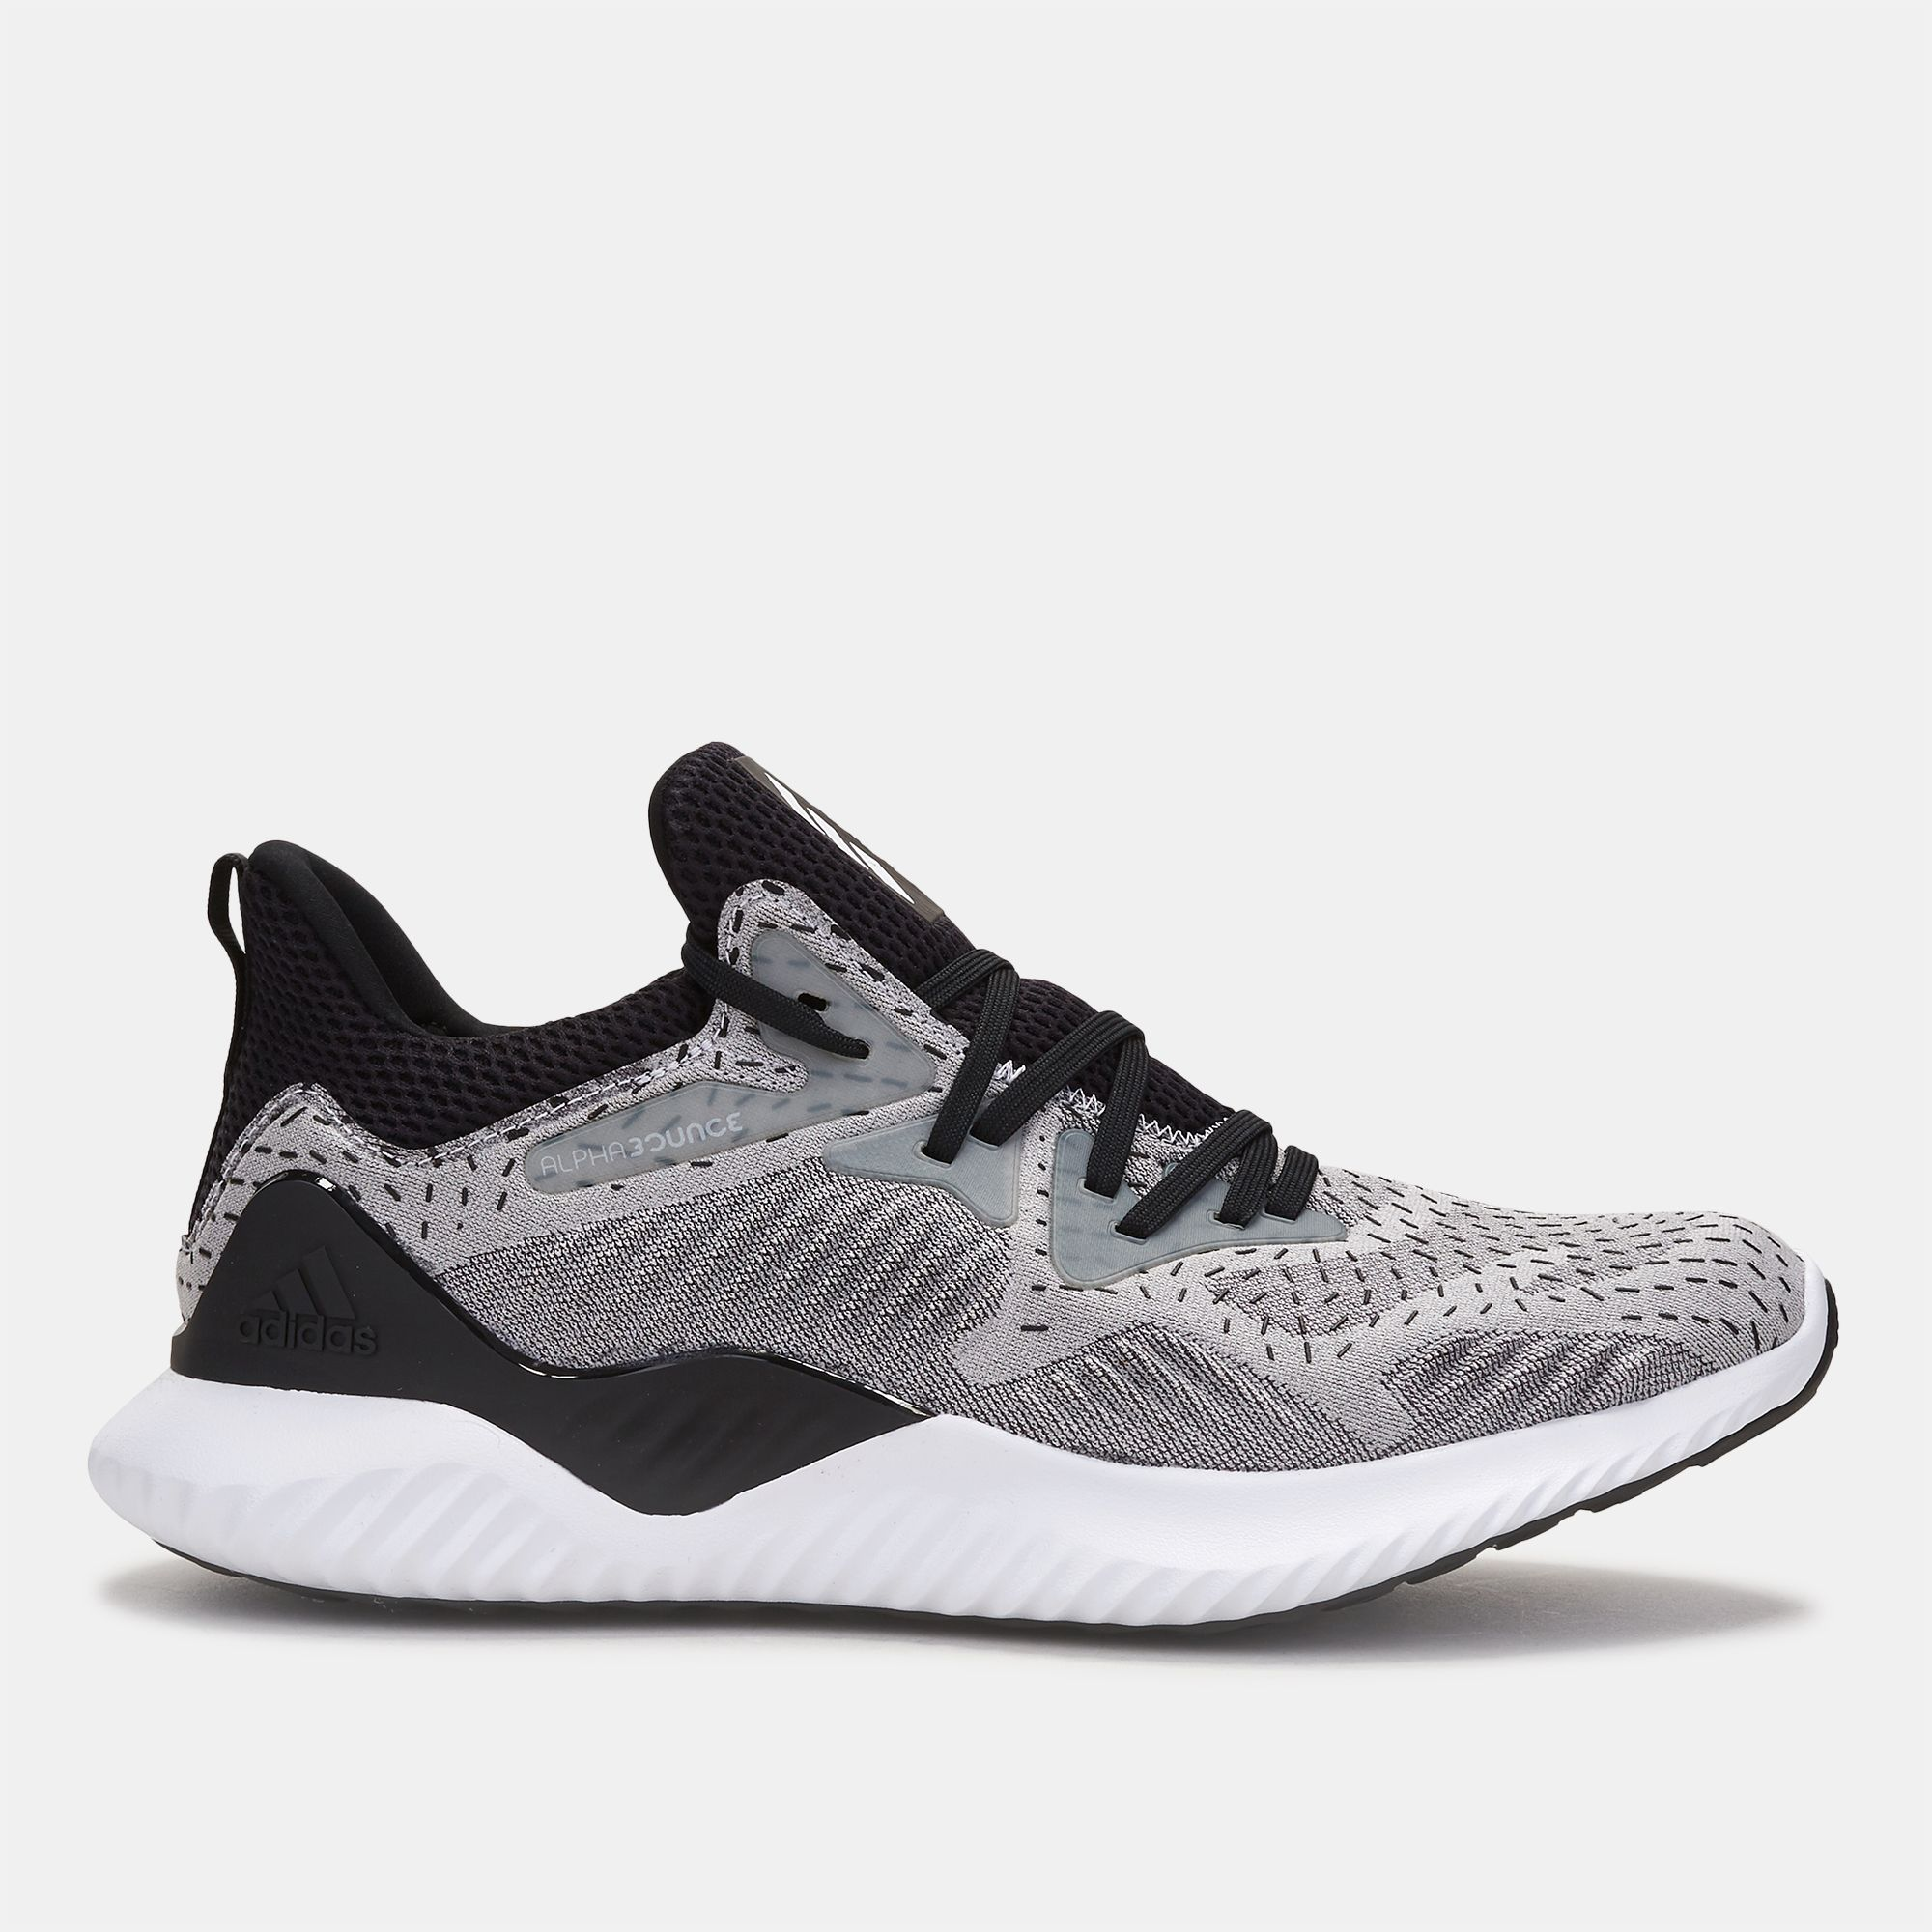 c38a3d53b27445 Shop Multi adidas Alphabounce Beyond Shoe for Unisex by adidas